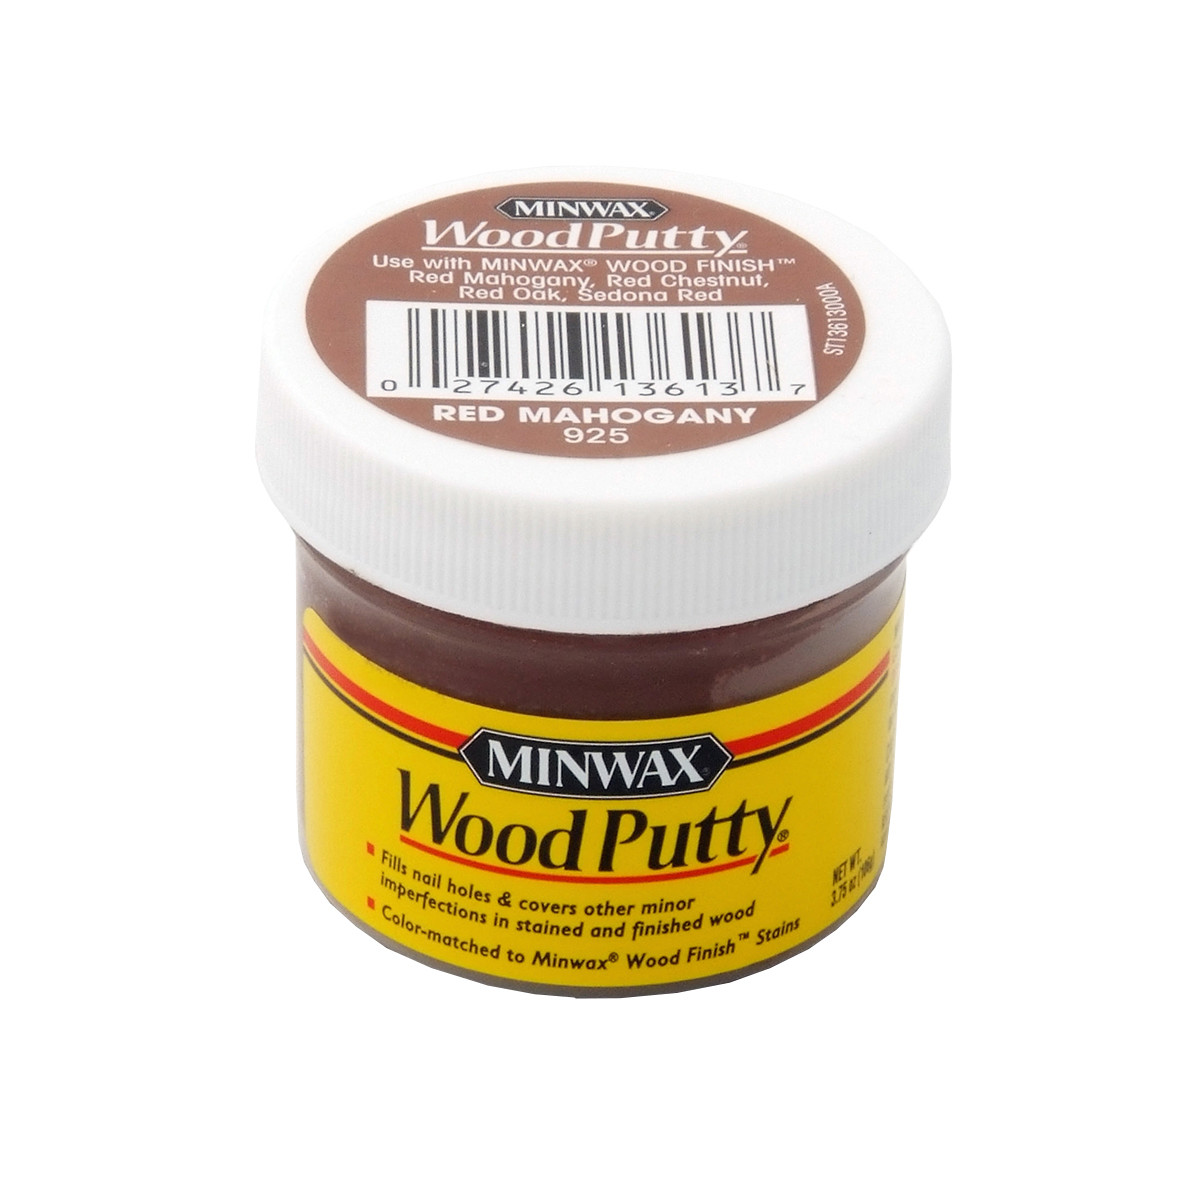 prefinished hardwood floor filler of minwax red mahogany 925 wood putty throughout fs min 36137